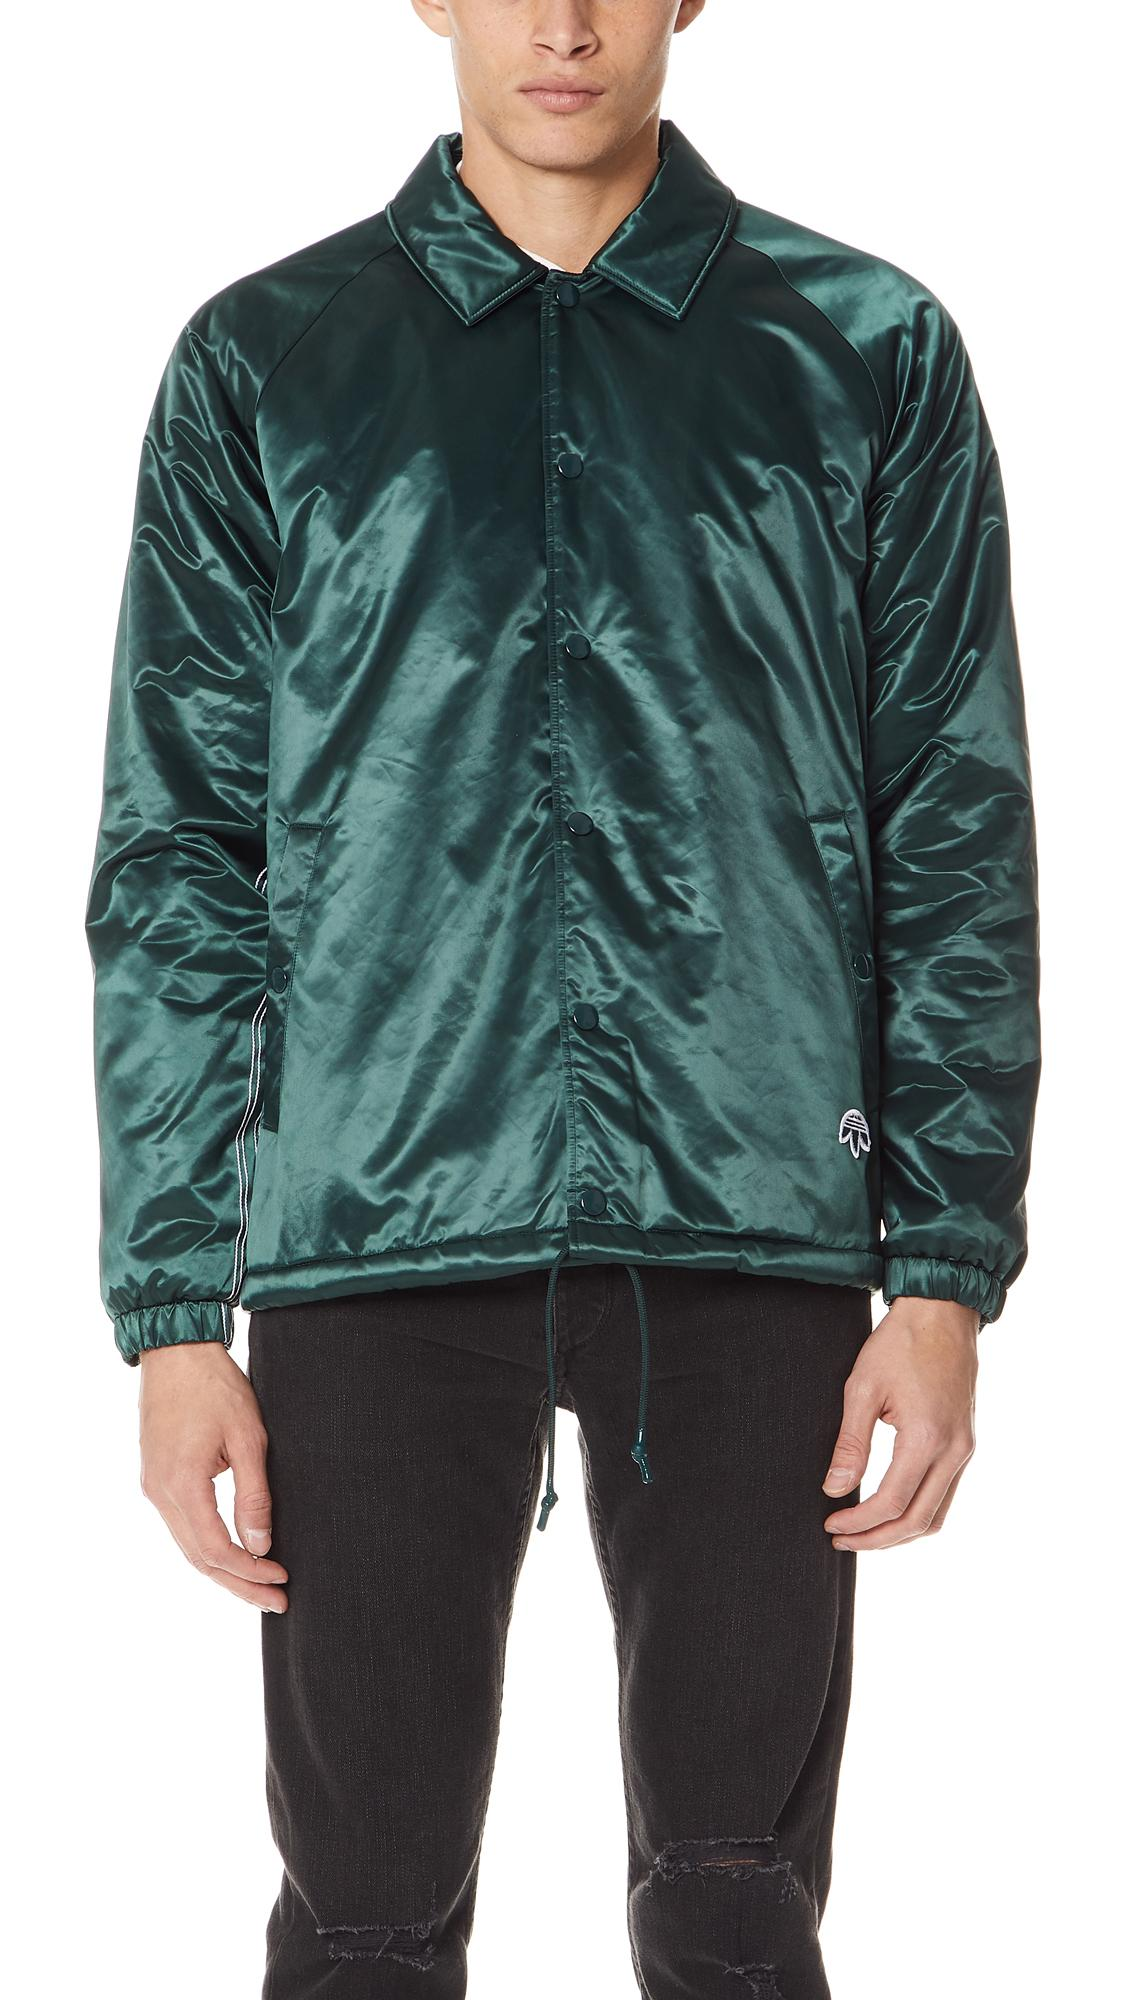 aa18325fac9424 Adidas Originals By Alexander Wang Green Nylon Coach Jacket